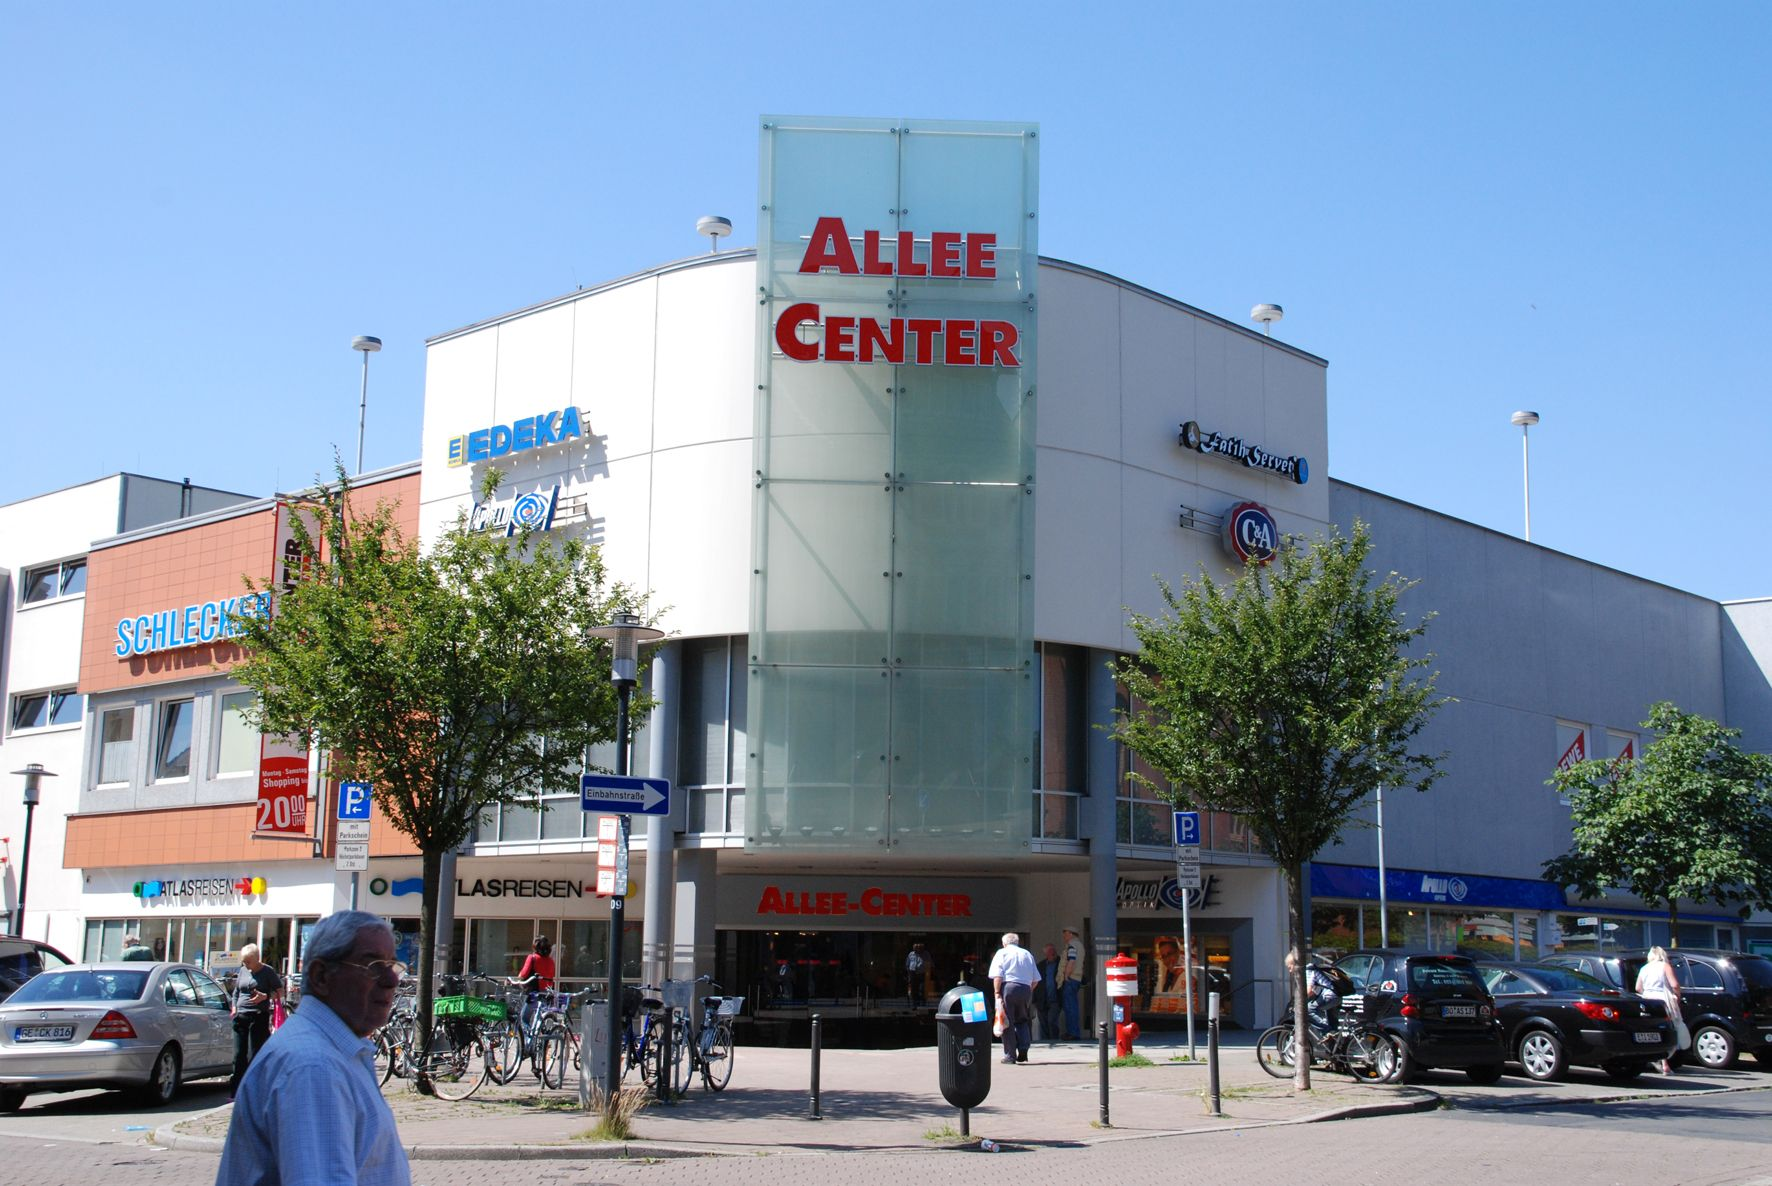 Allee-Center Essen-Altenessen